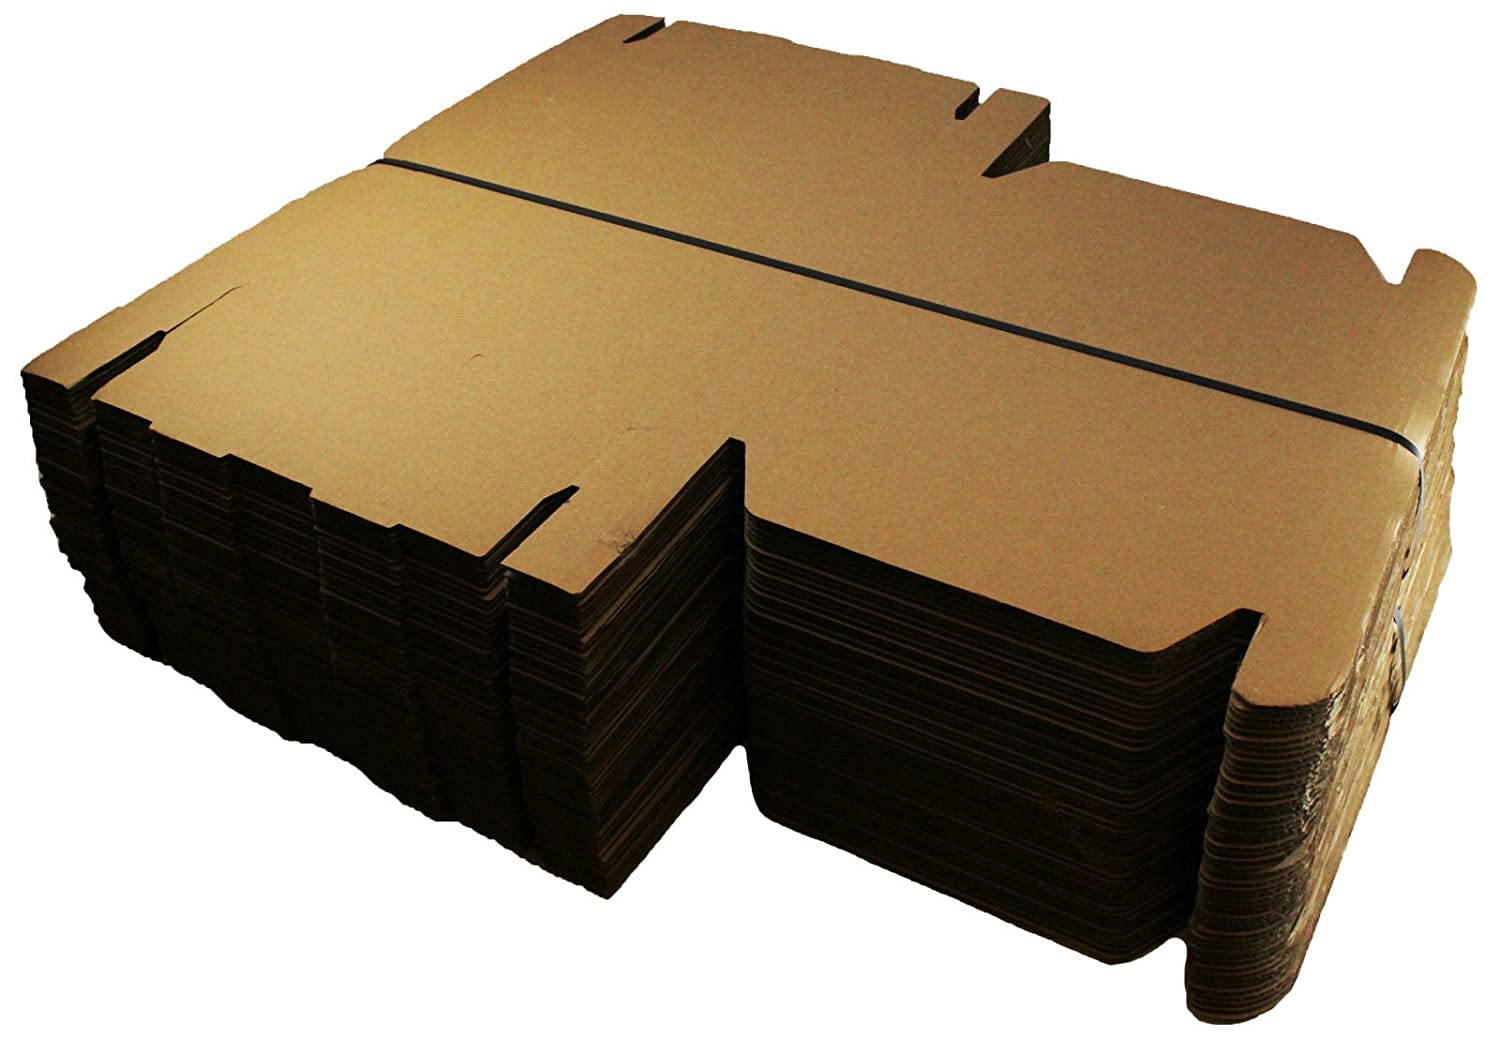 LAPTOP SHIPPING MAIL POSTAL STRONG DOUBLE WALL CARDBOARD BOX SCREEN ☆ 47x31x6cm 10